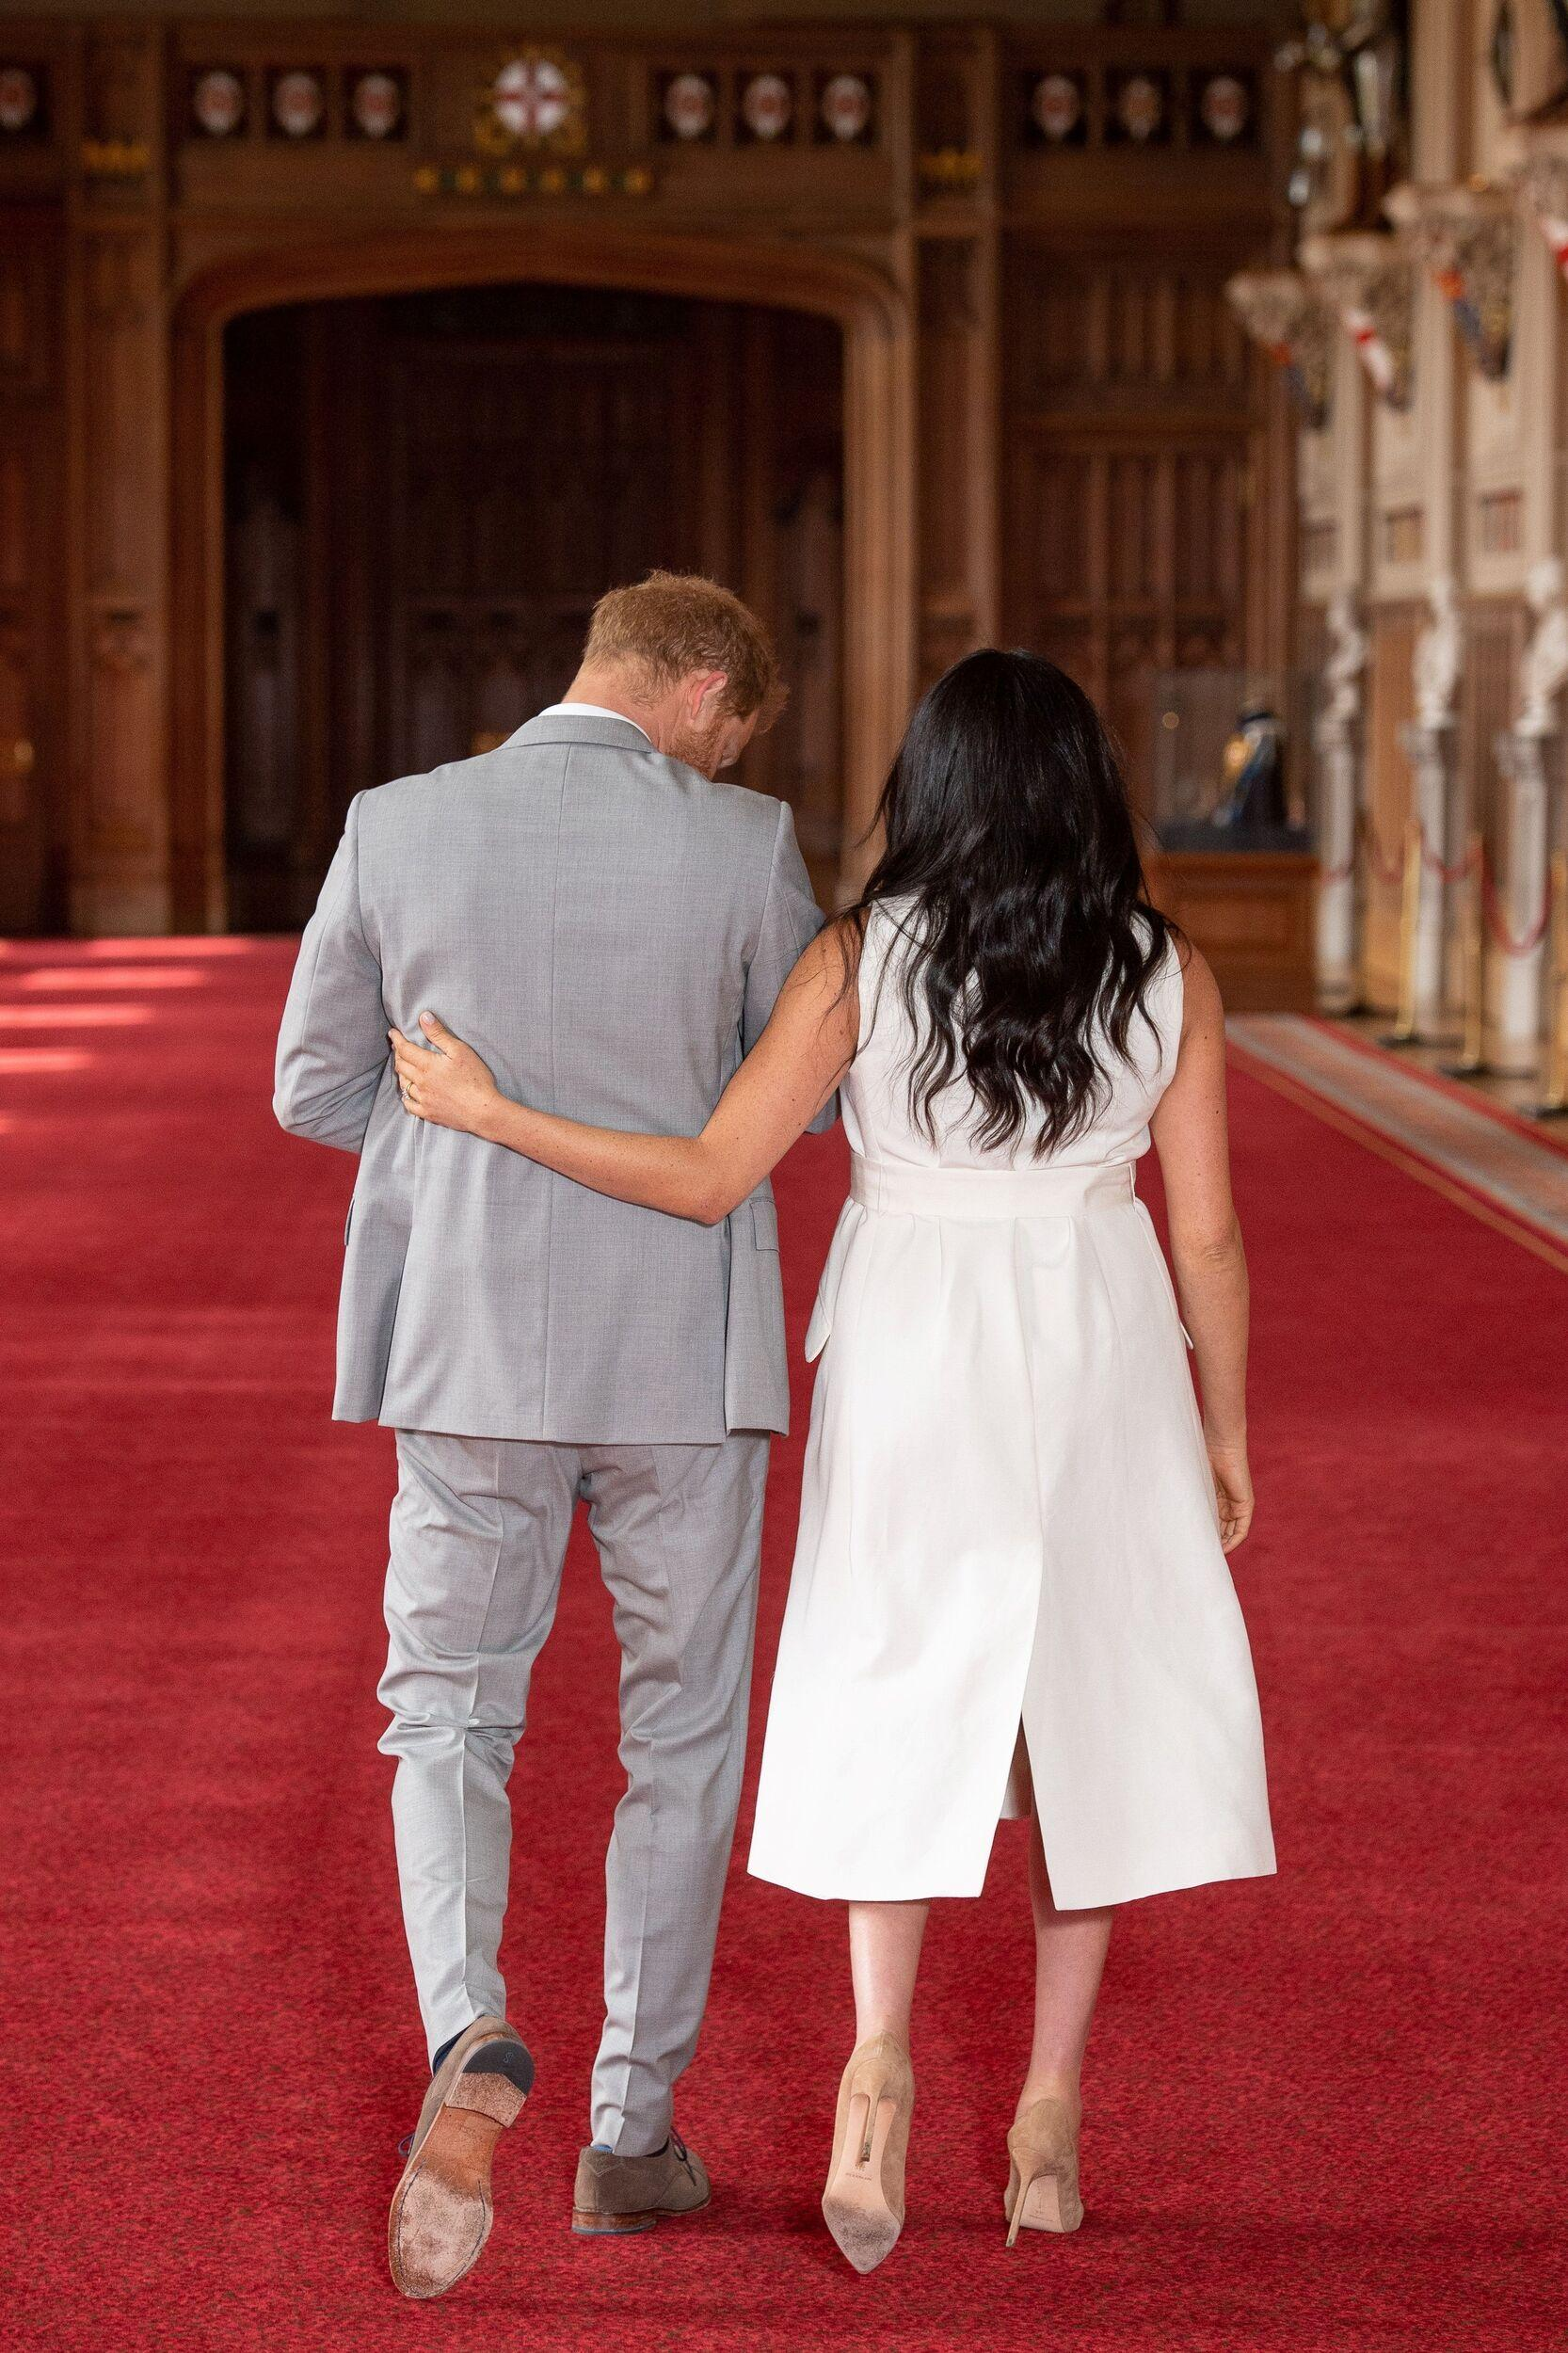 Britain's Prince Harry, Duke of Sussex (L), and his wife Meghan, Duchess of Sussex, walk away after posing for photographs with their newborn baby son in St George's Hall at Windsor Castle in Windsor, west of London on May 8, 2019. (Photo by Dominic Lipinski / POOL / AFP) (Photo credit should read DOMINIC LIPINSKI/AFP/Getty Images)